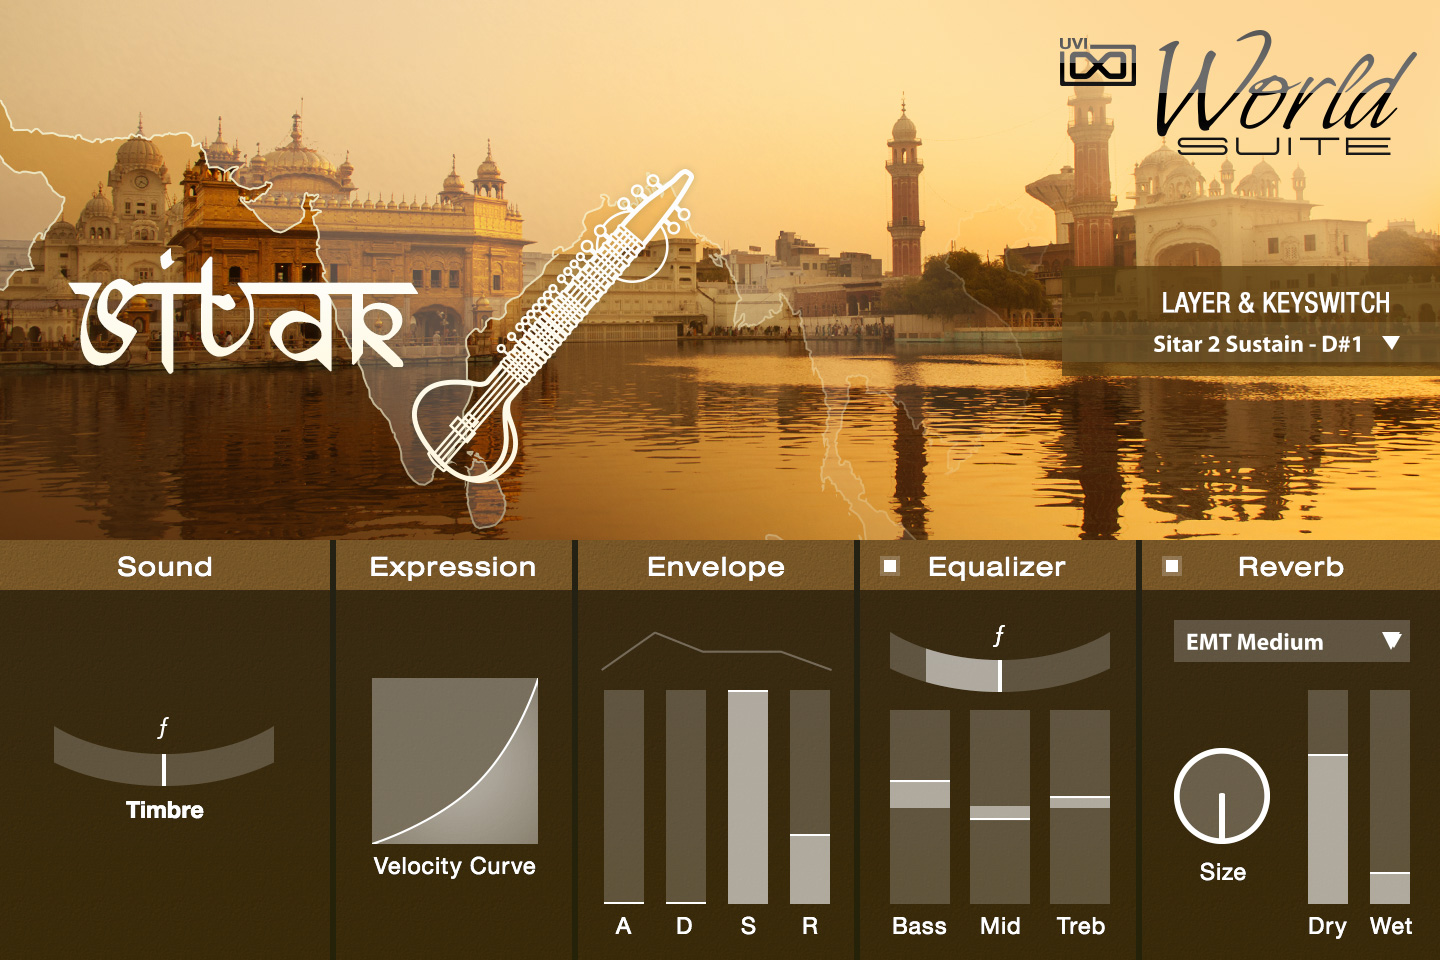 UVI World Suite | Sitar UI